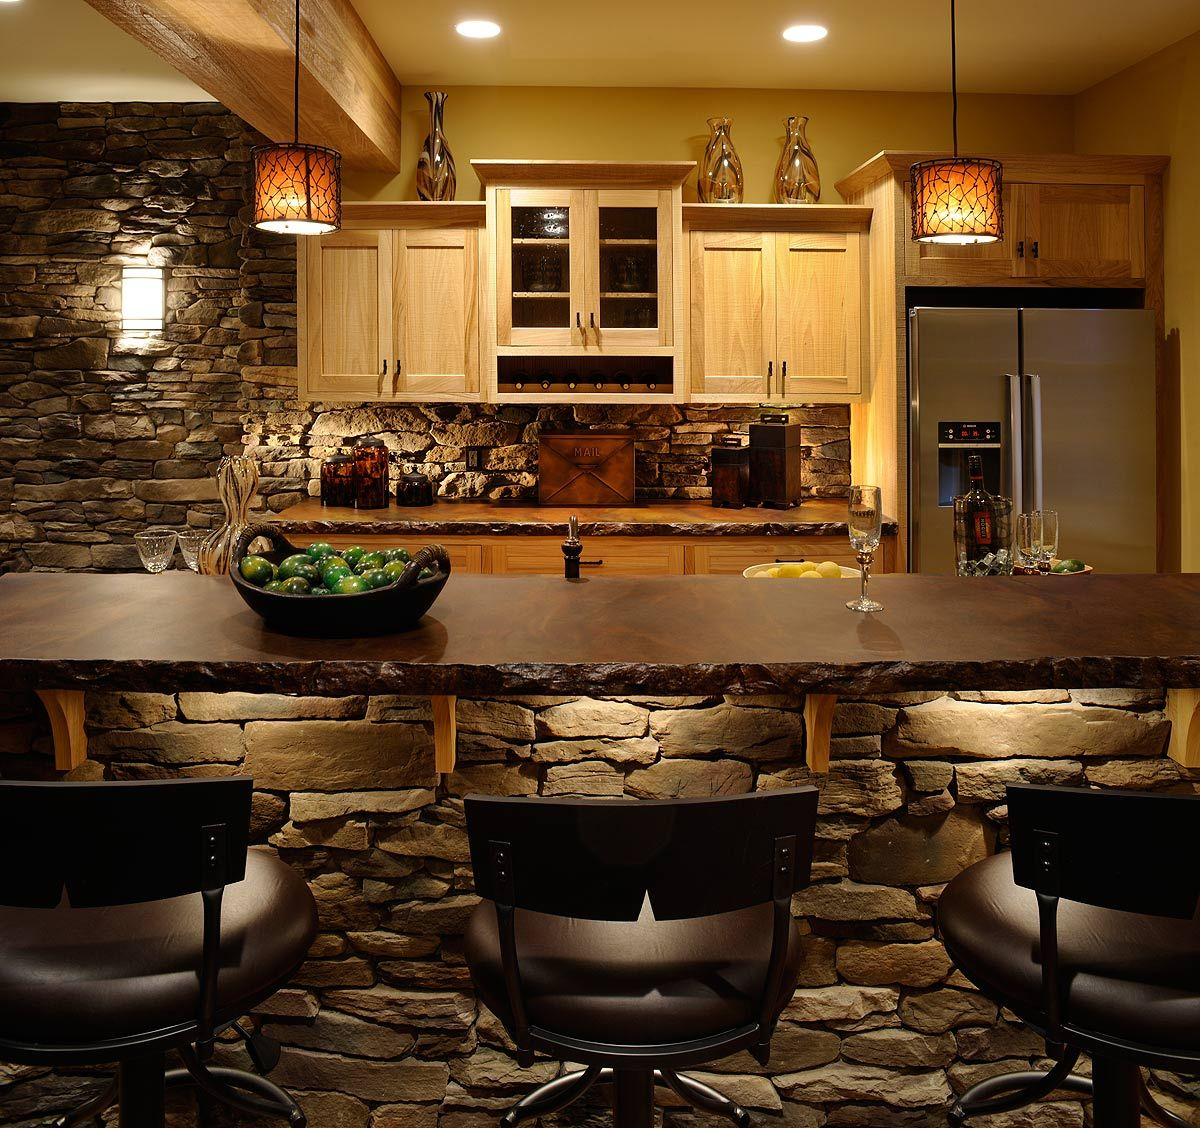 Cabin Kitchen Design Creative kitchen bar design: creative cozy space for relaxing | home